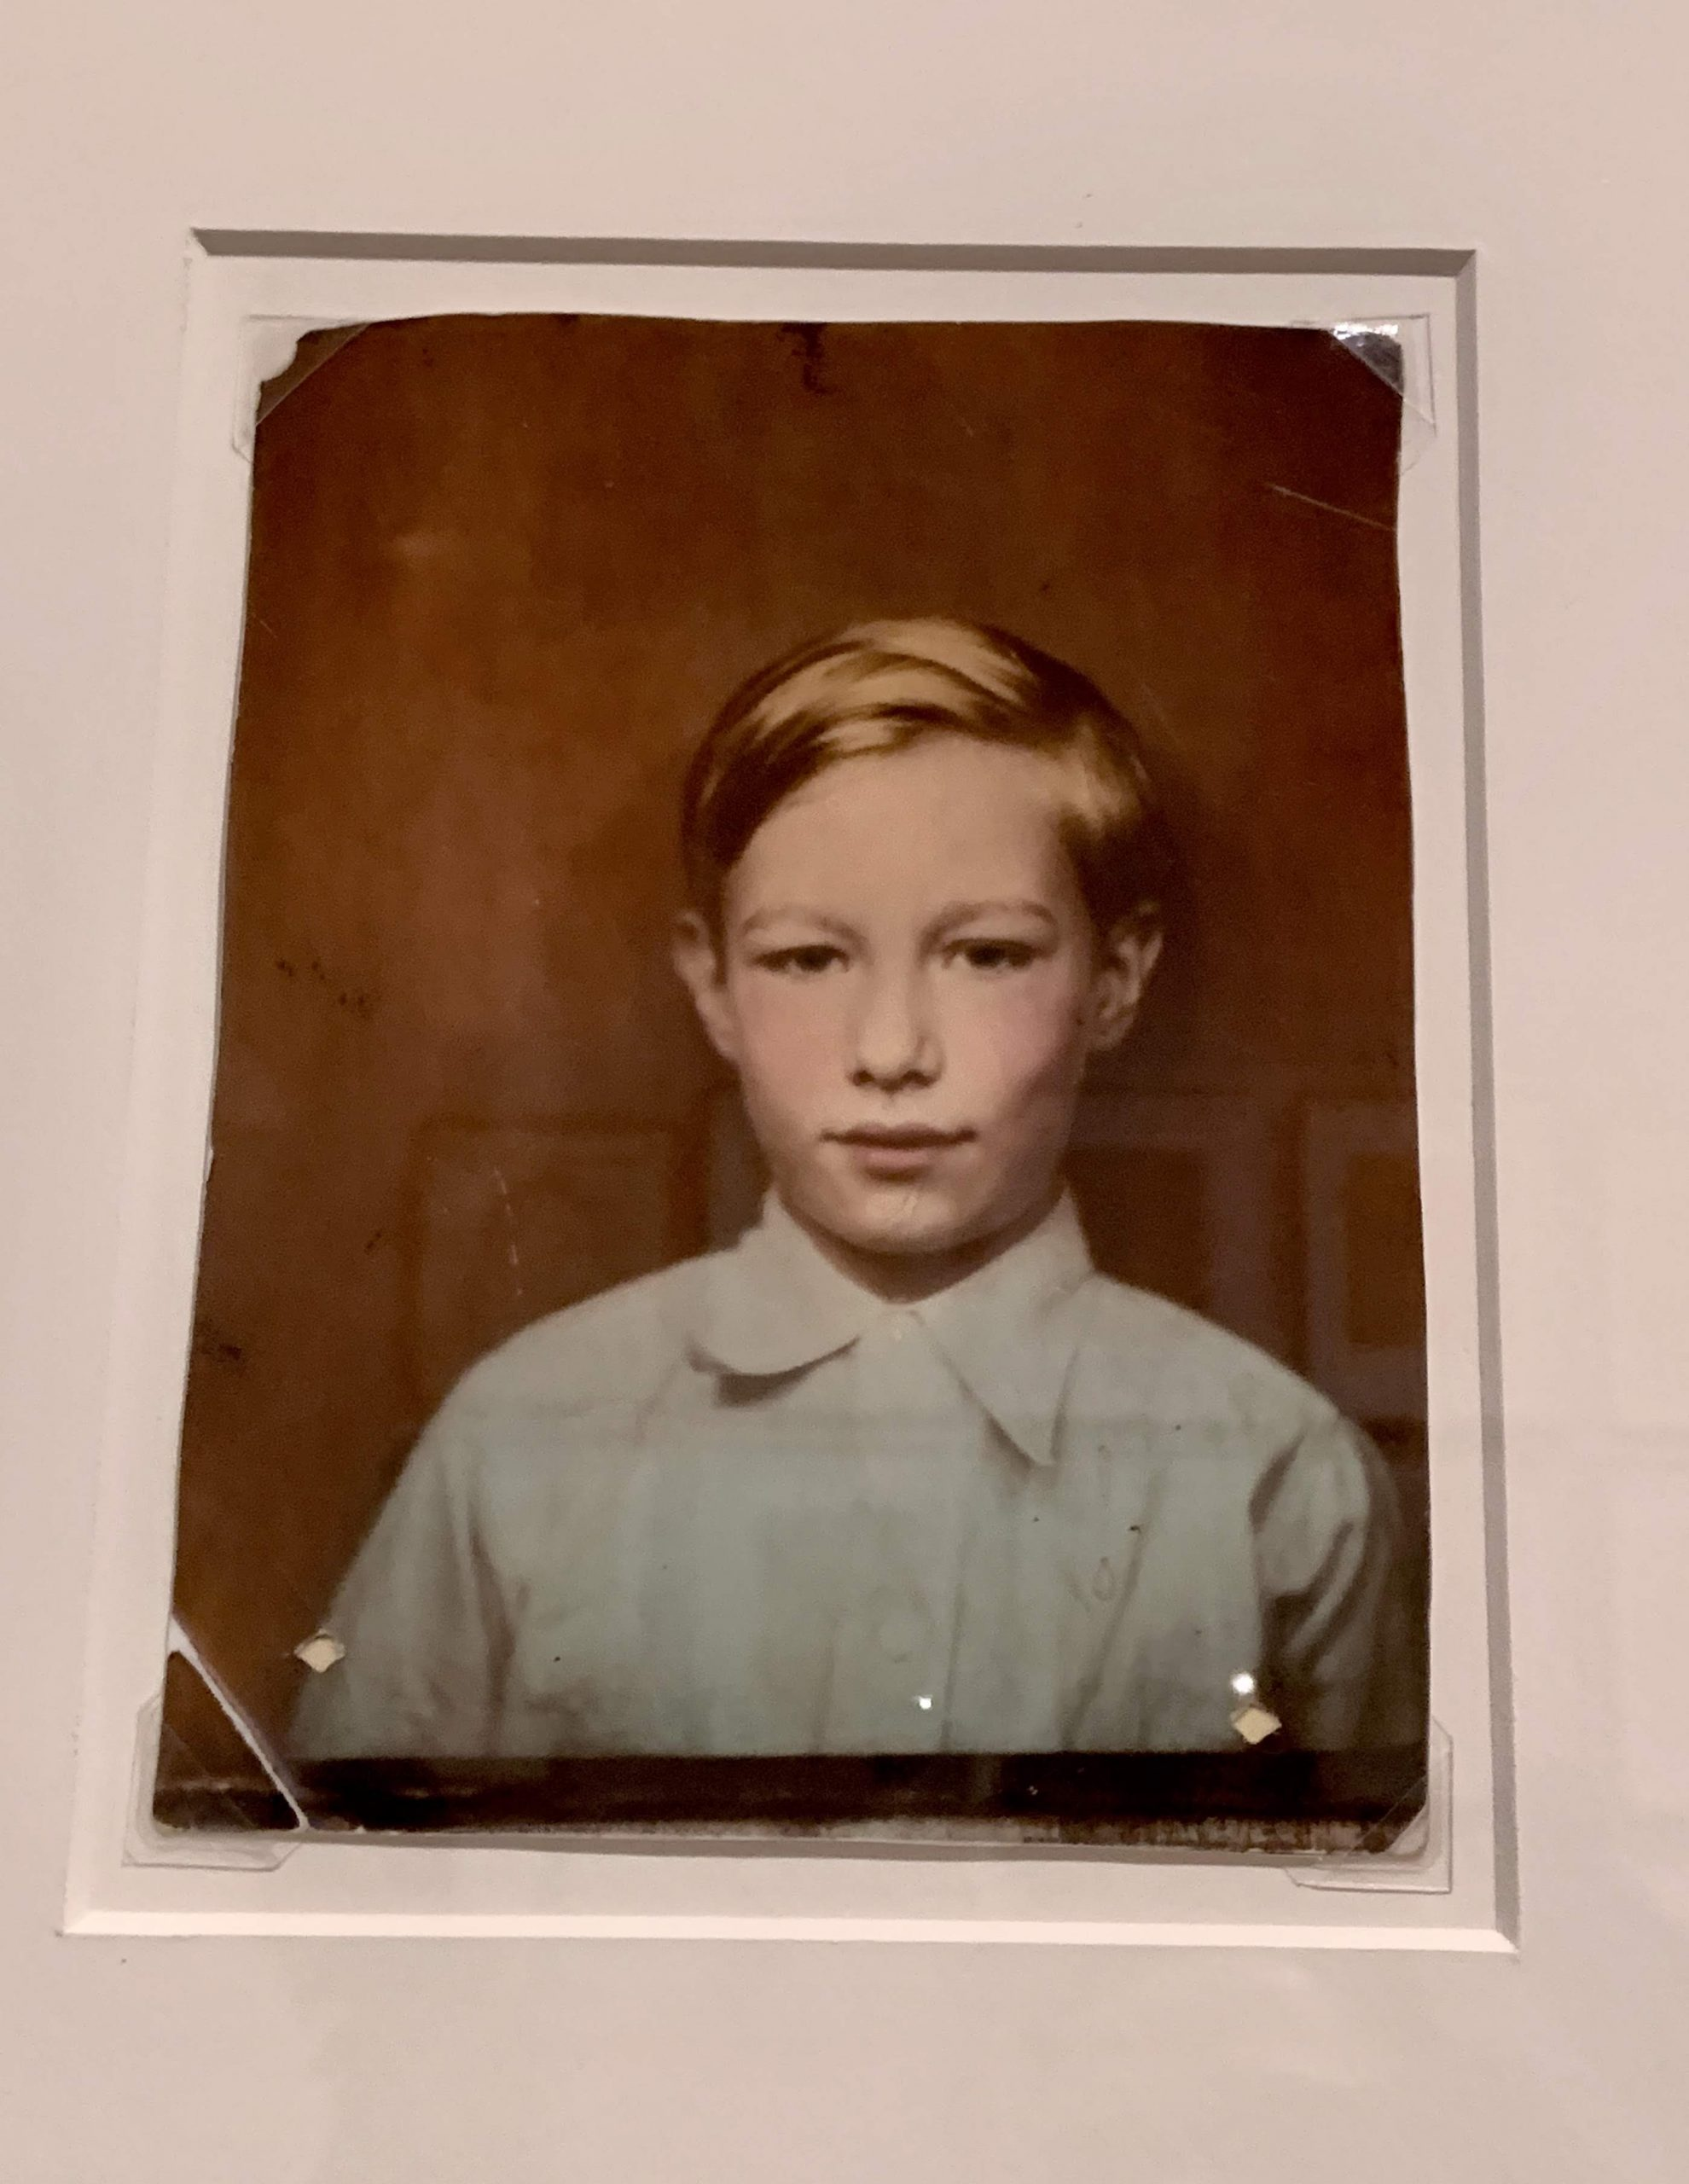 Andy Warhol as a young boy, c. 1936